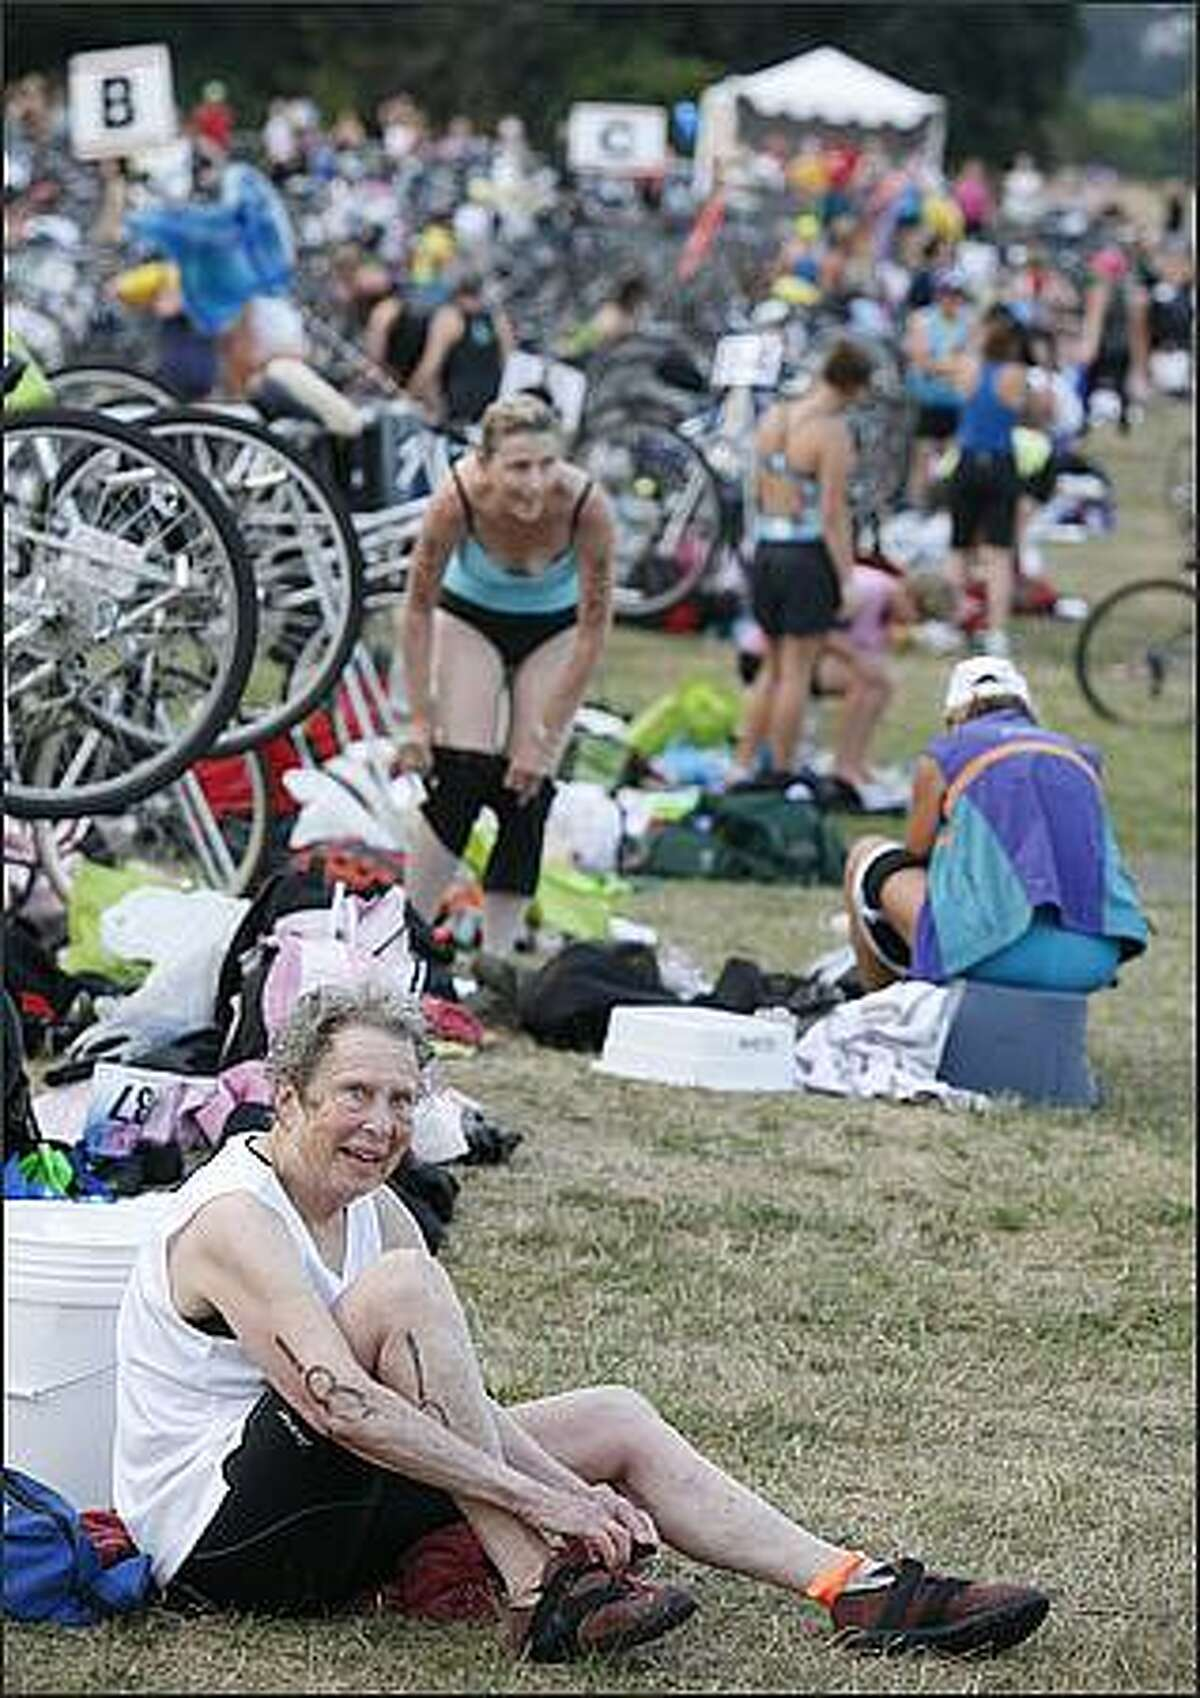 Athletes make the transition from swimming to biking in the 2008 Danskin Triathlon.